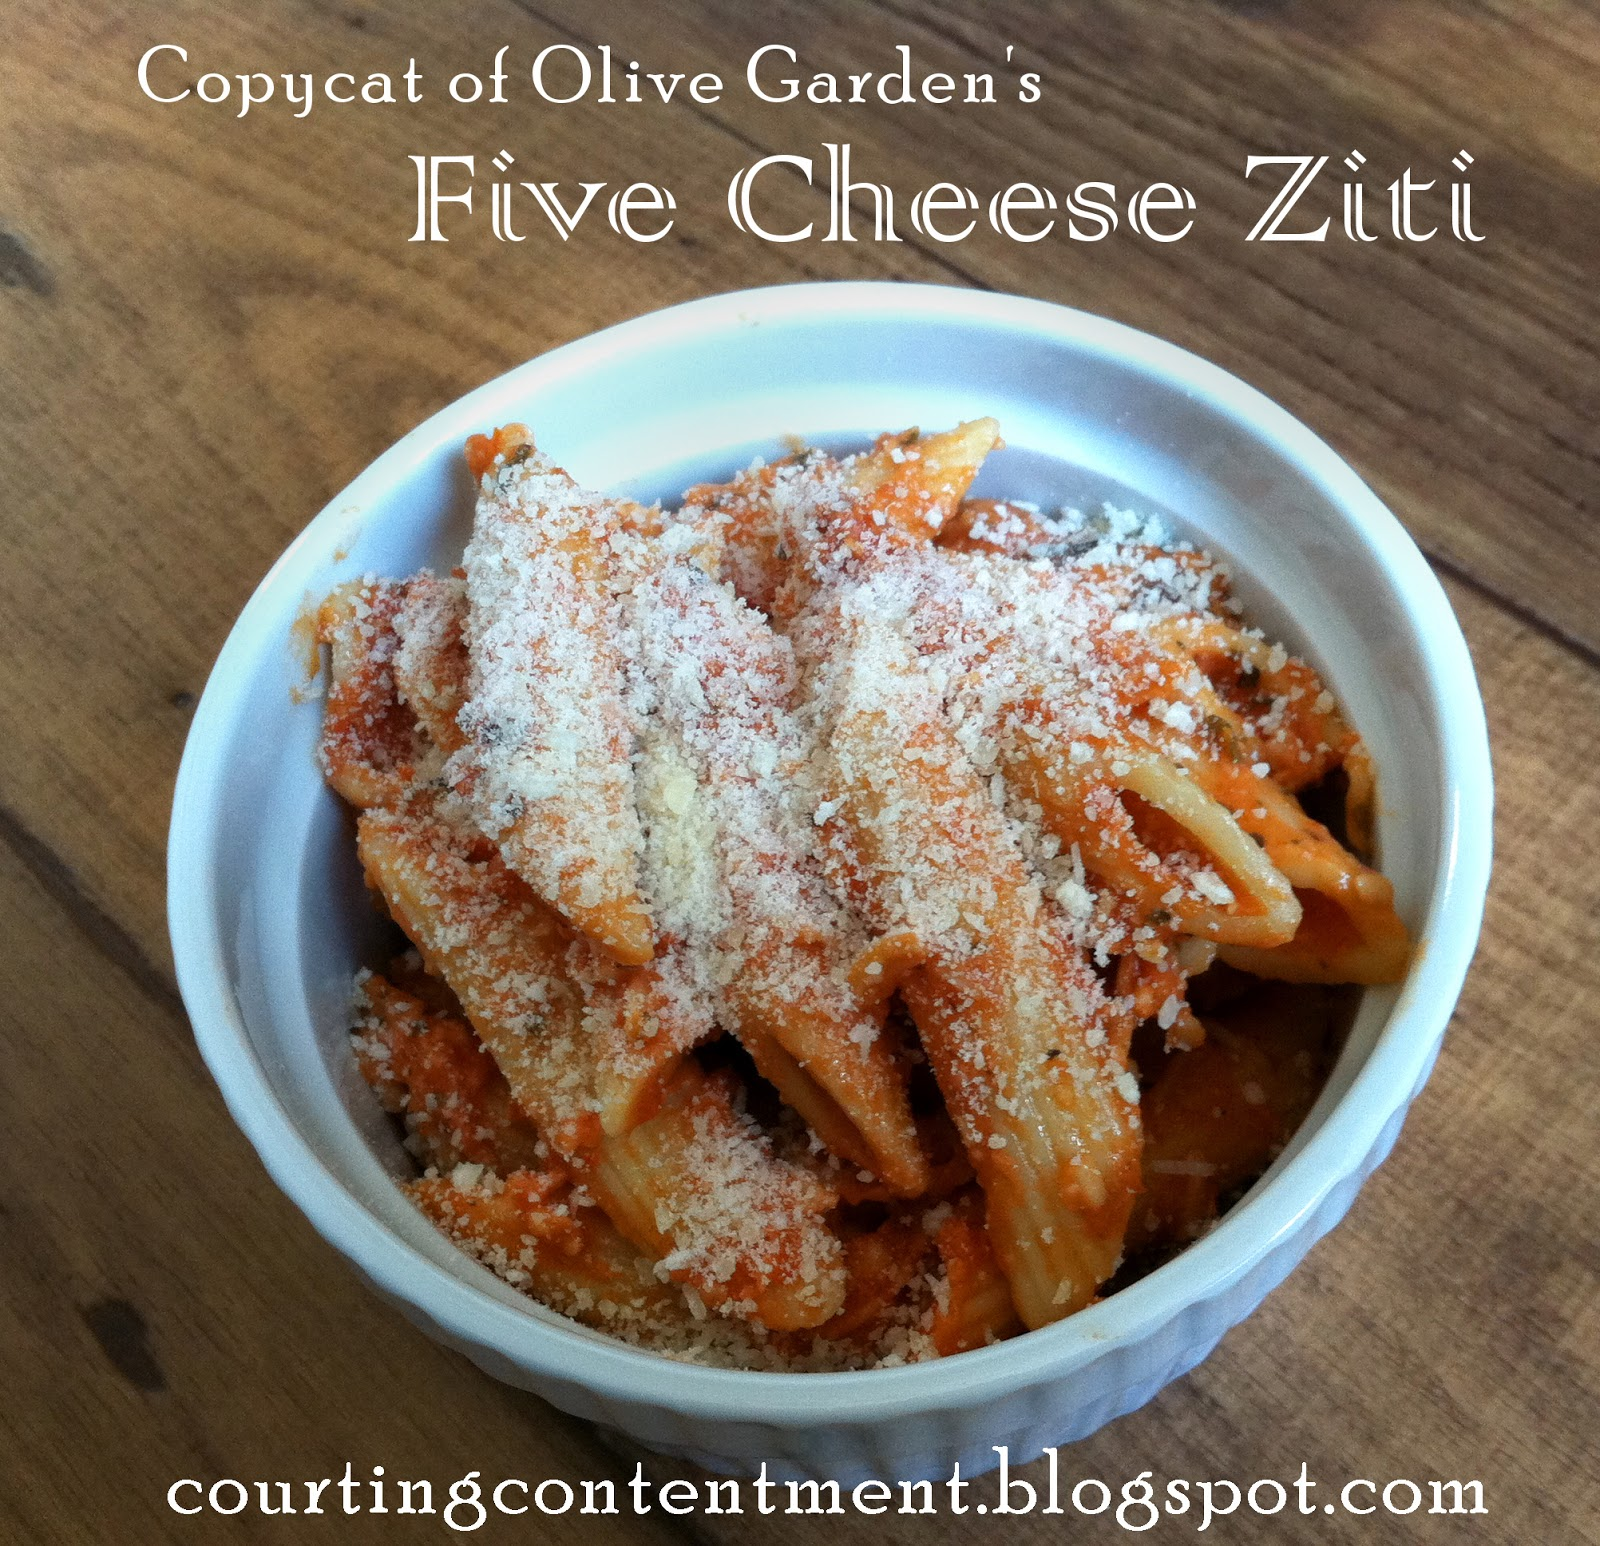 Courting Contentment: Copycat Five Cheese Ziti from Olive Garden